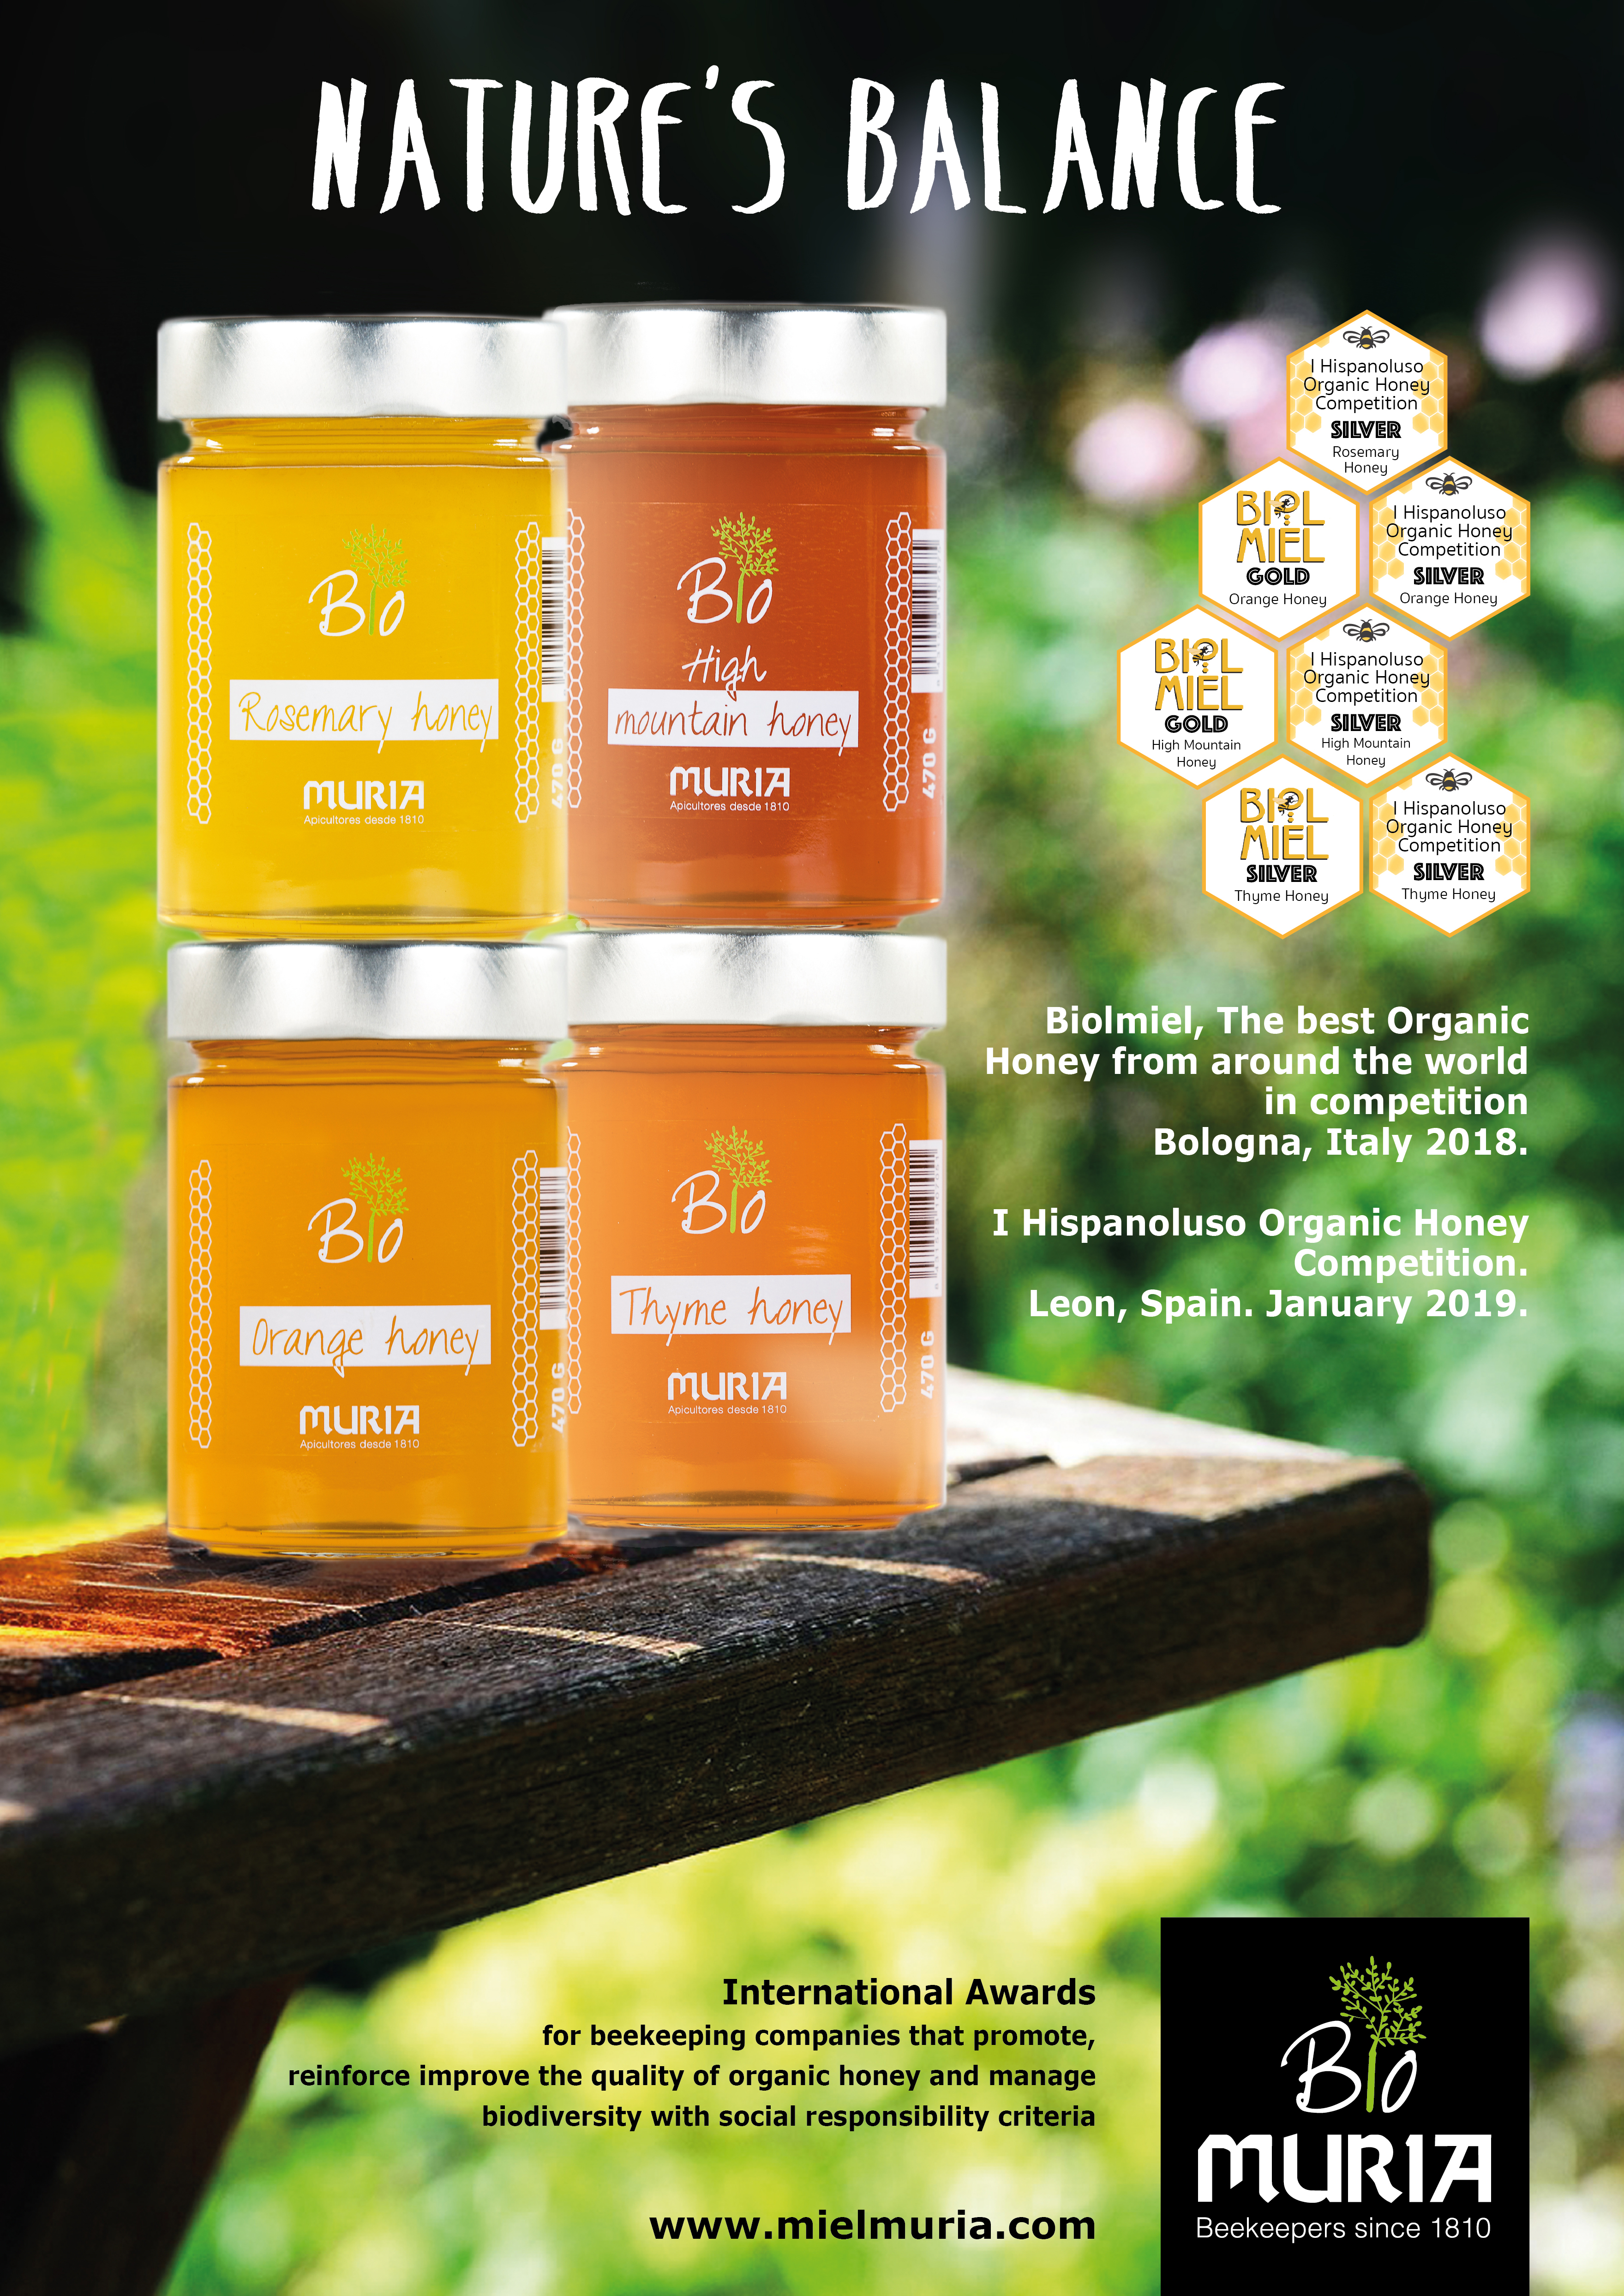 Two new international awards for Muria Bio's collection of Organic Honey